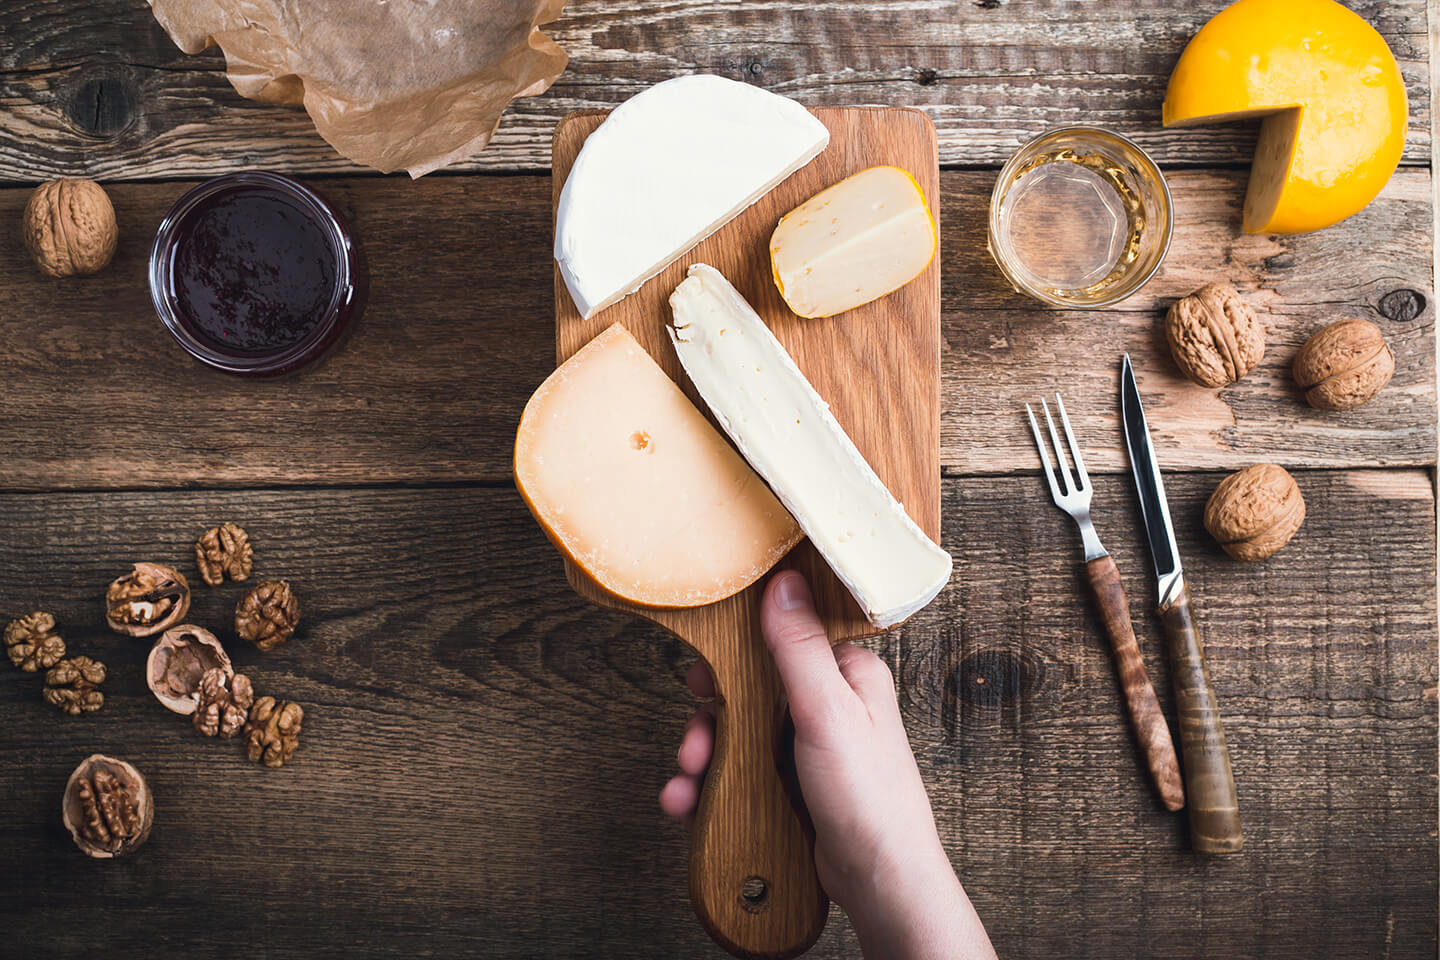 A hand holding up a rustic, wooden cheese board with assorted cheeses.